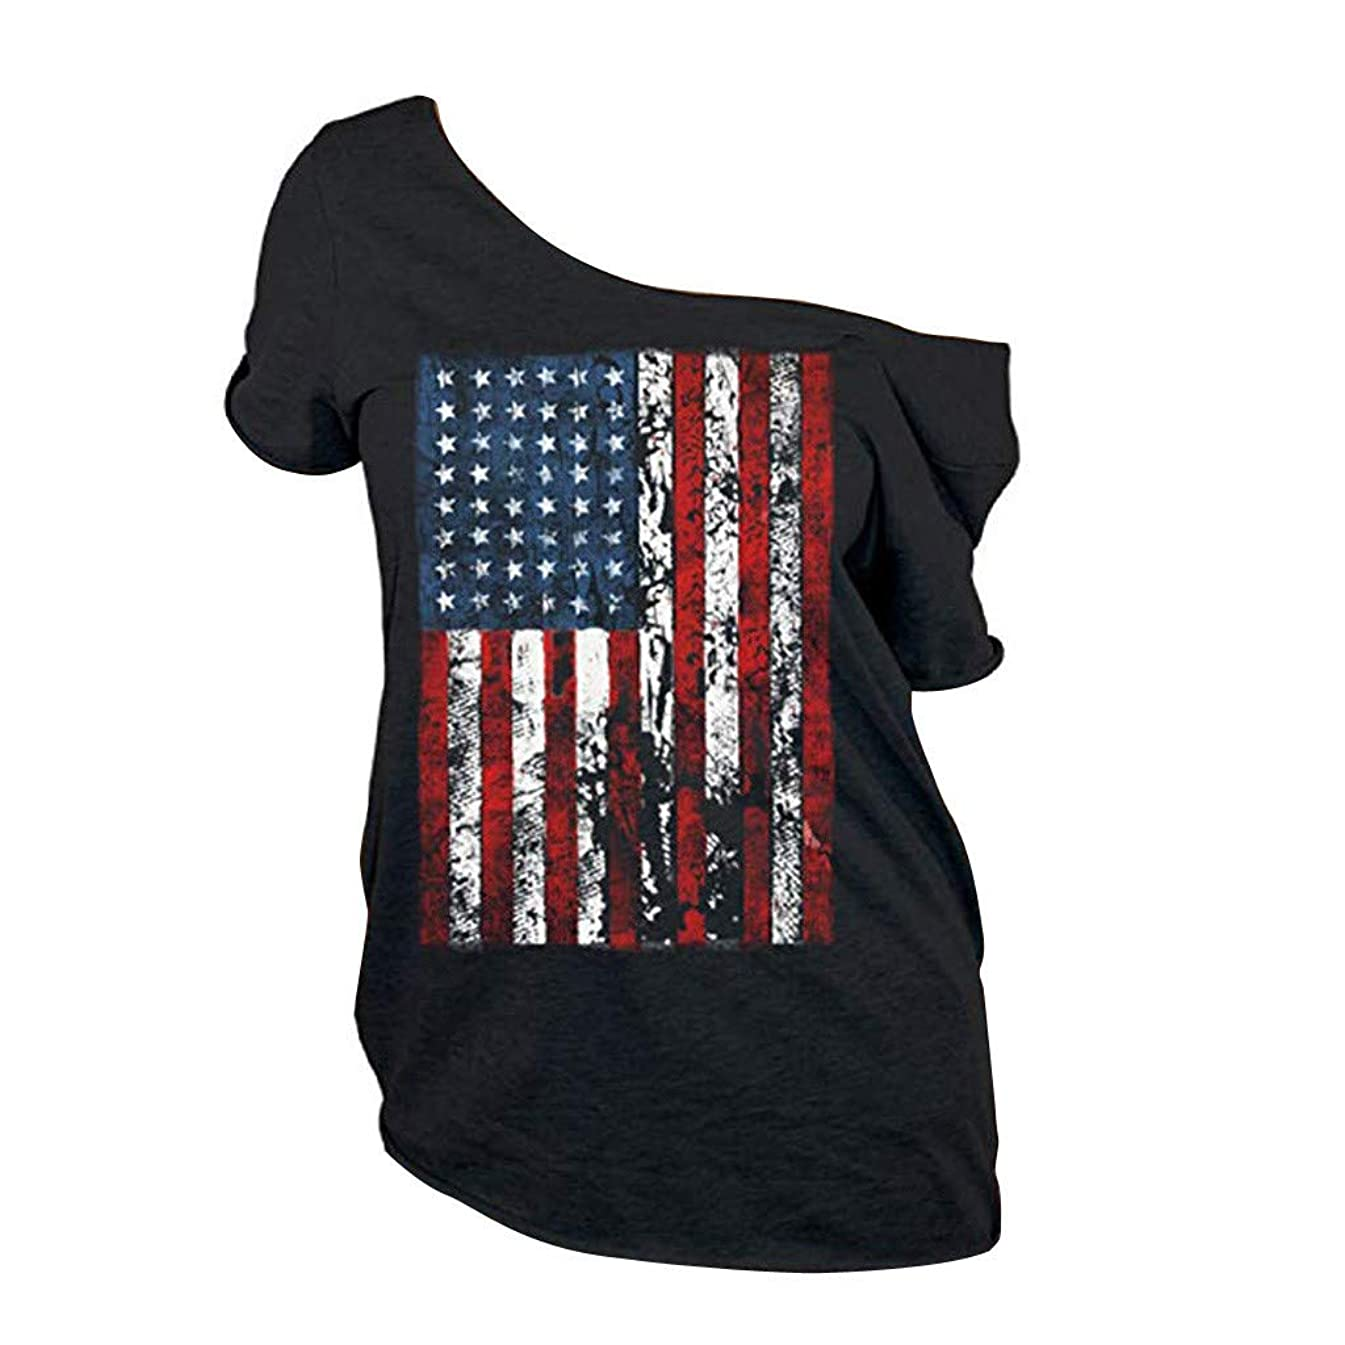 ?eneral store Women Plus Size Independence Day Short Sleeve Summer T-Shirt Tops